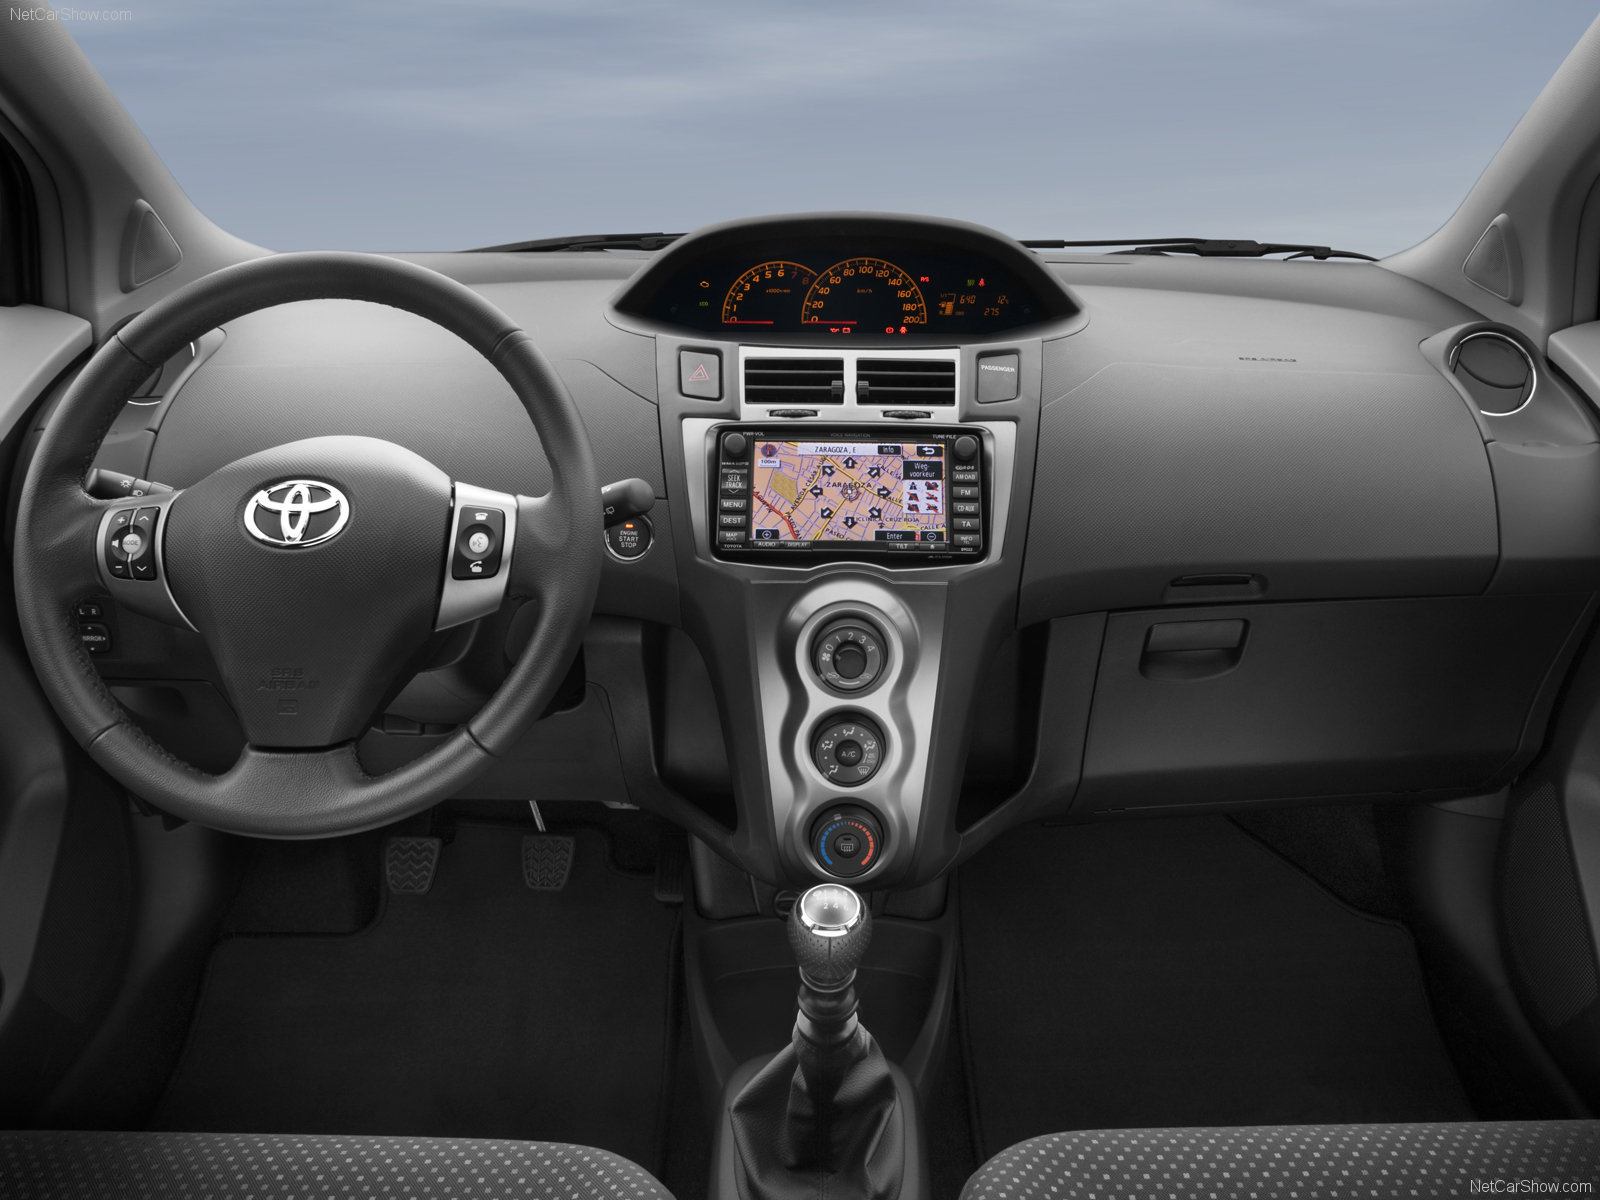 3dtuning Of Toyota Yaris S Liftback 2009 Unique On Line Car Configurator For More